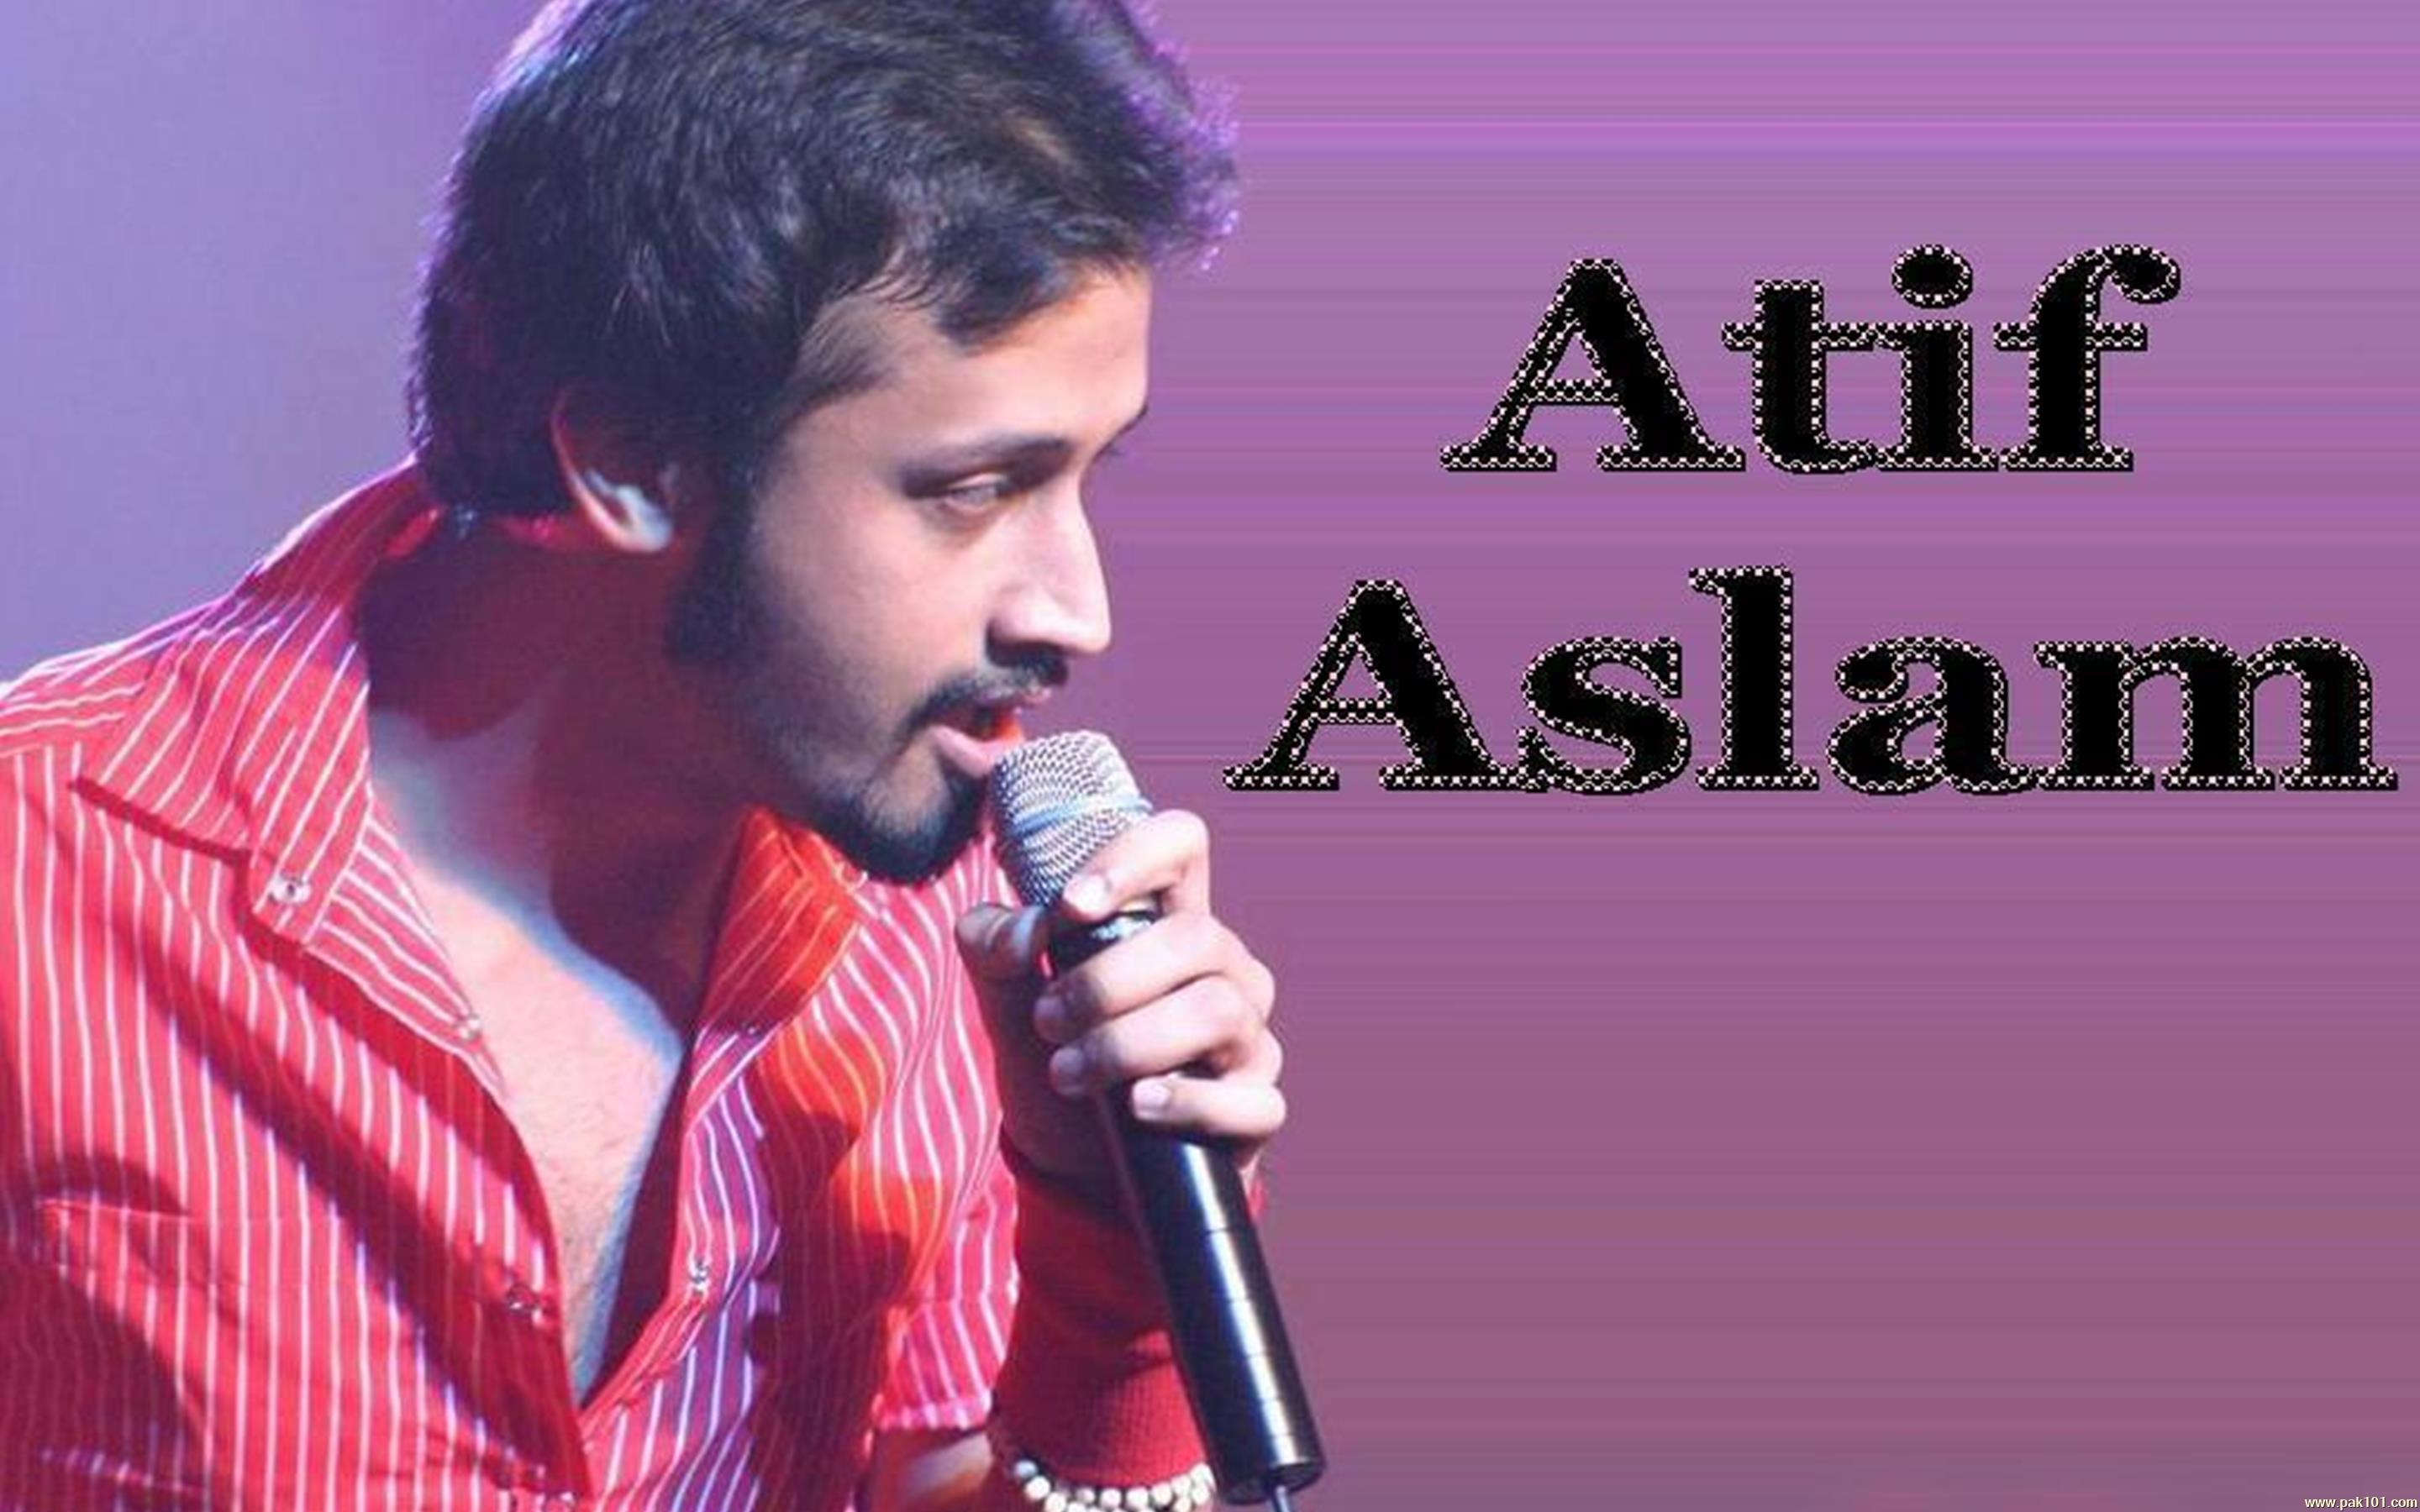 Atif aslam pictures free download Top 100 Song Lyrics MetroLyrics